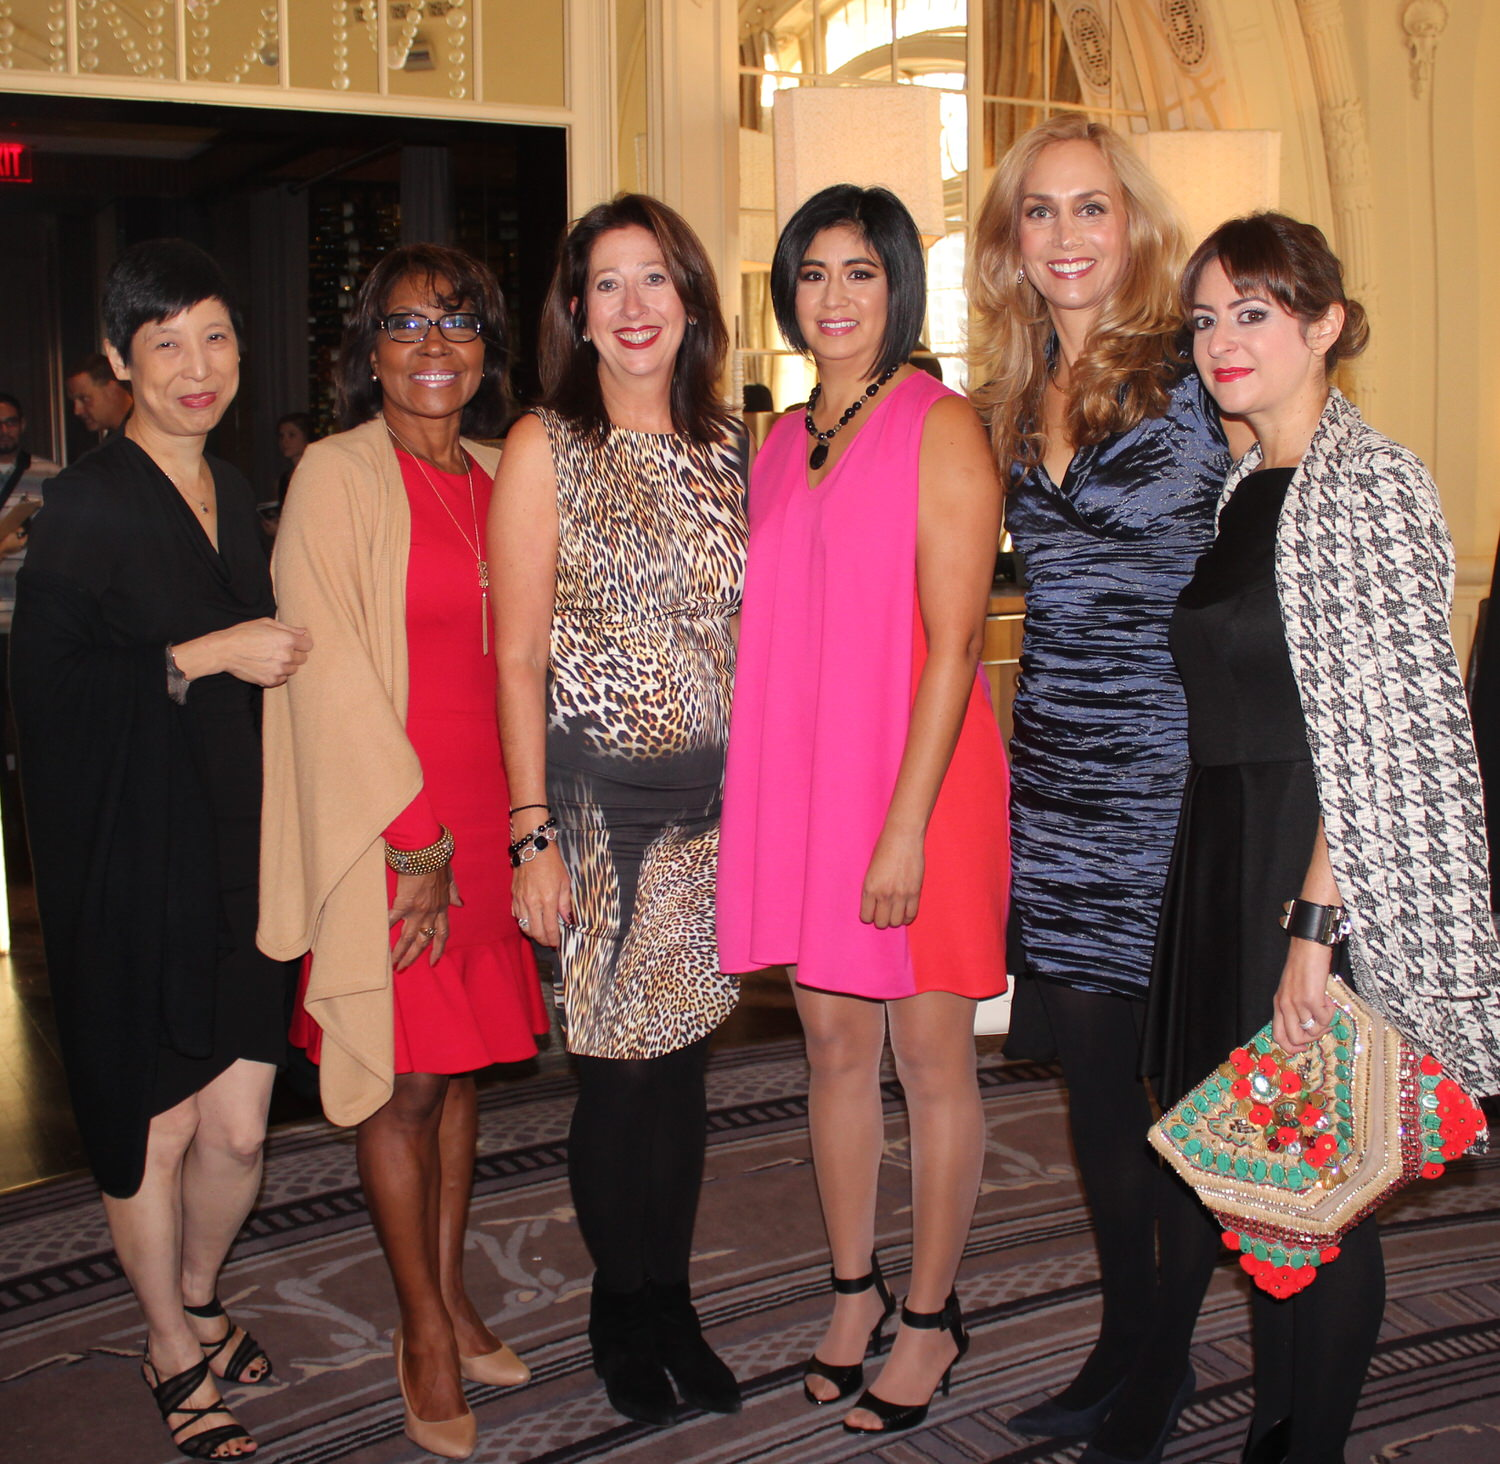 2015 Visionary Ellen Yin (left) and owner of Nicole Miller Philadelphia, Mary K. Dougherty (3rd from left),with 2015 XIX Women honorees Councilwoman Blondell Williams Brown, Alice Bast, Cecilia Torres and Nicole Paloux. (PHOTO: MKDA)